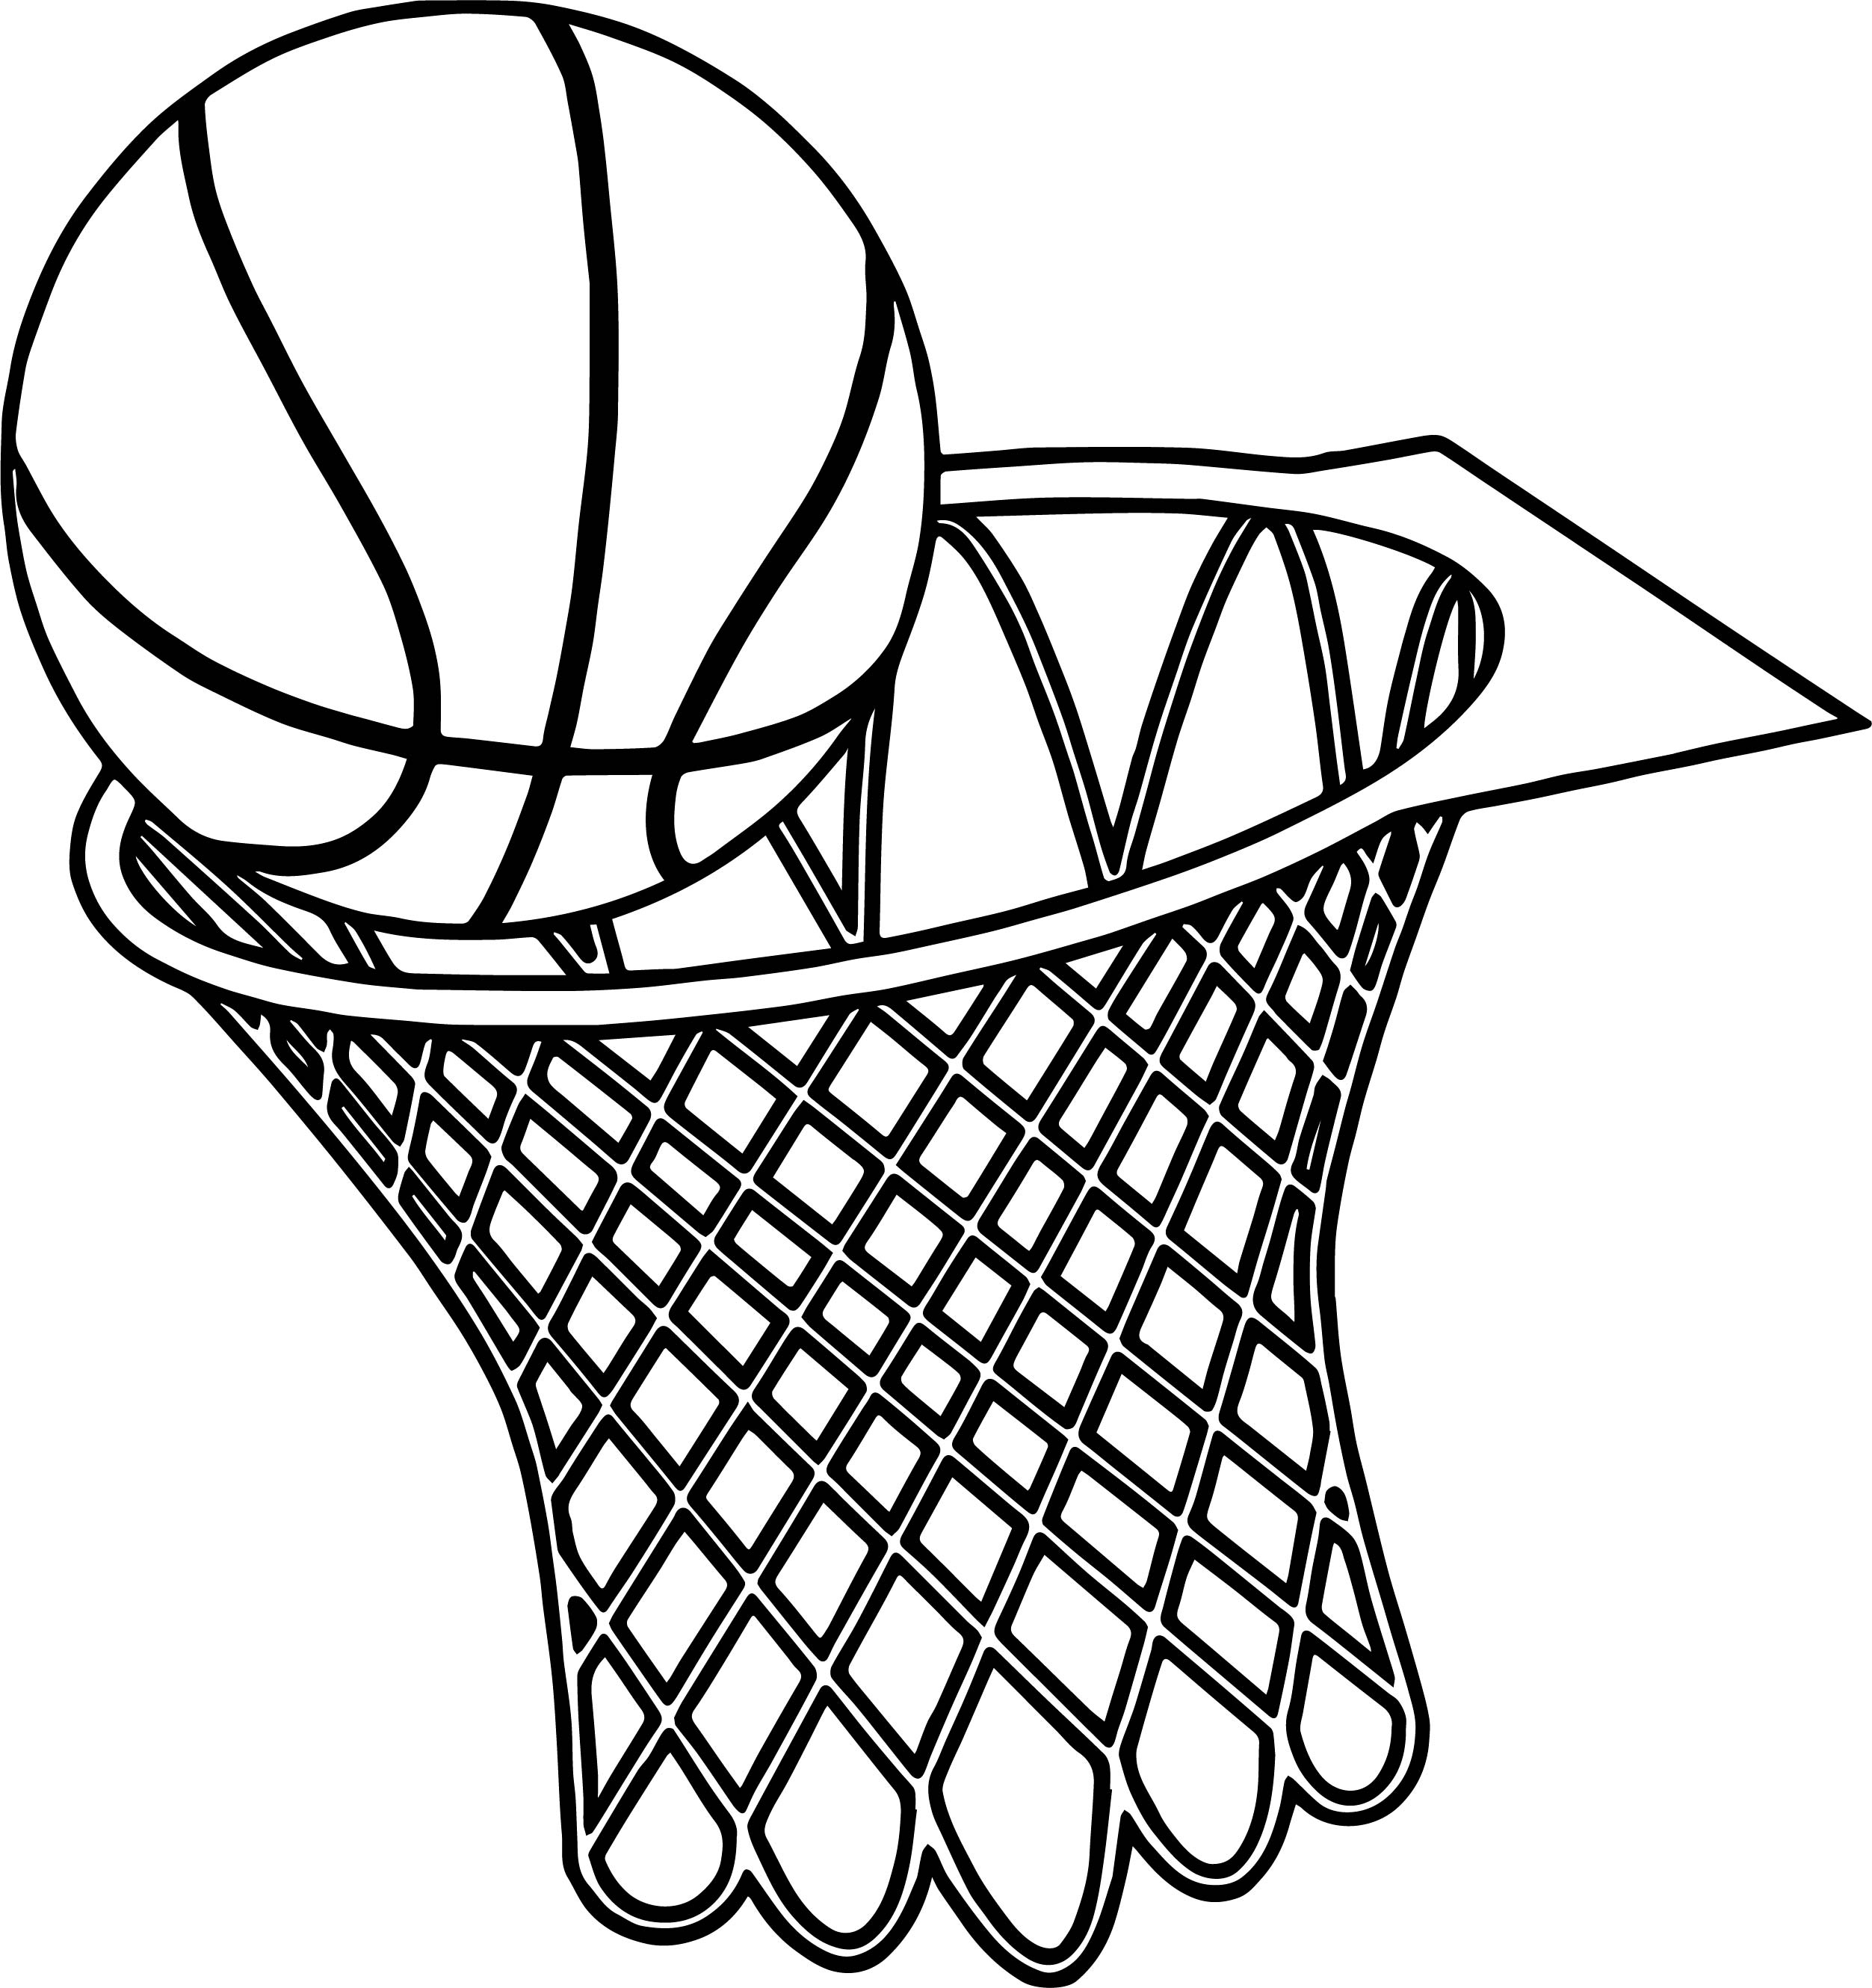 basketball coloring pages - basketball basket graphics musthavemenus found coloring page